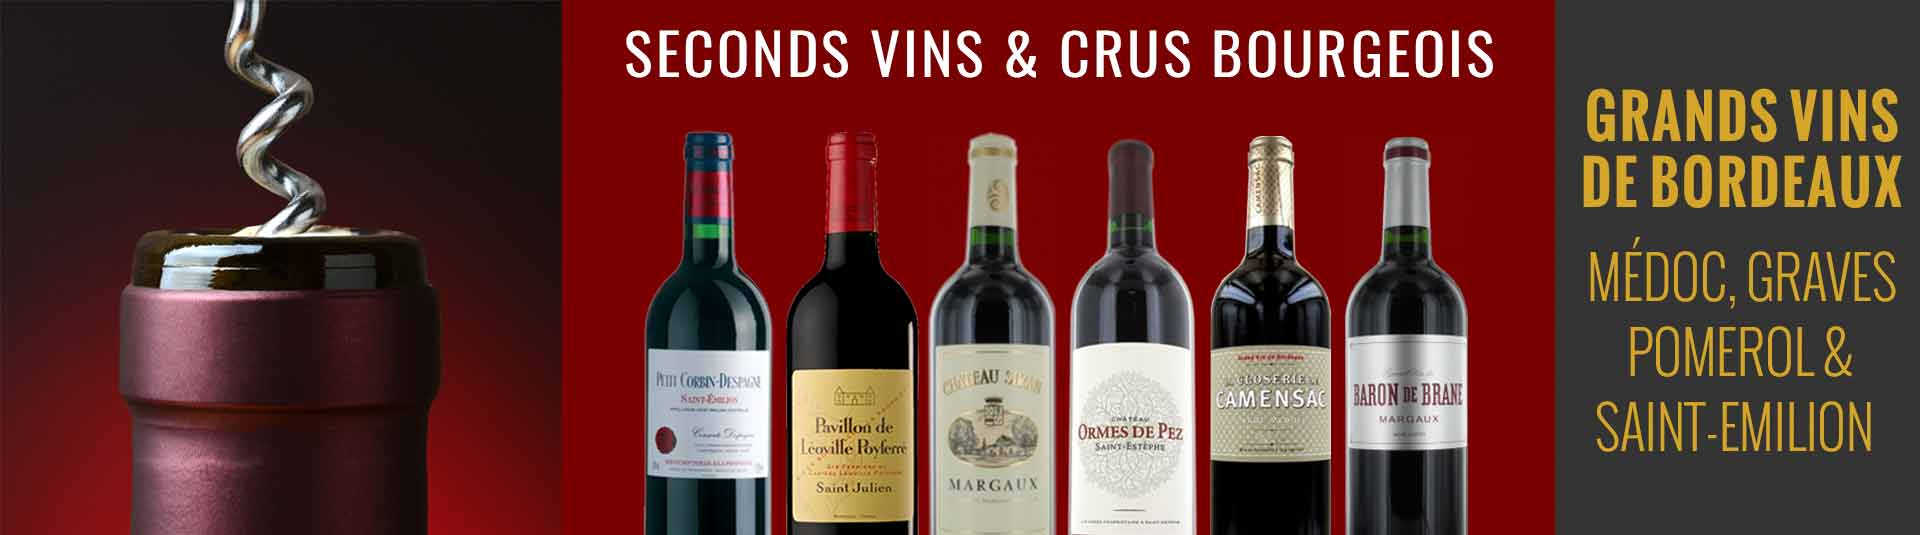 Seconds vins et Cru Bourgeois - Grands vins de Bordeaux